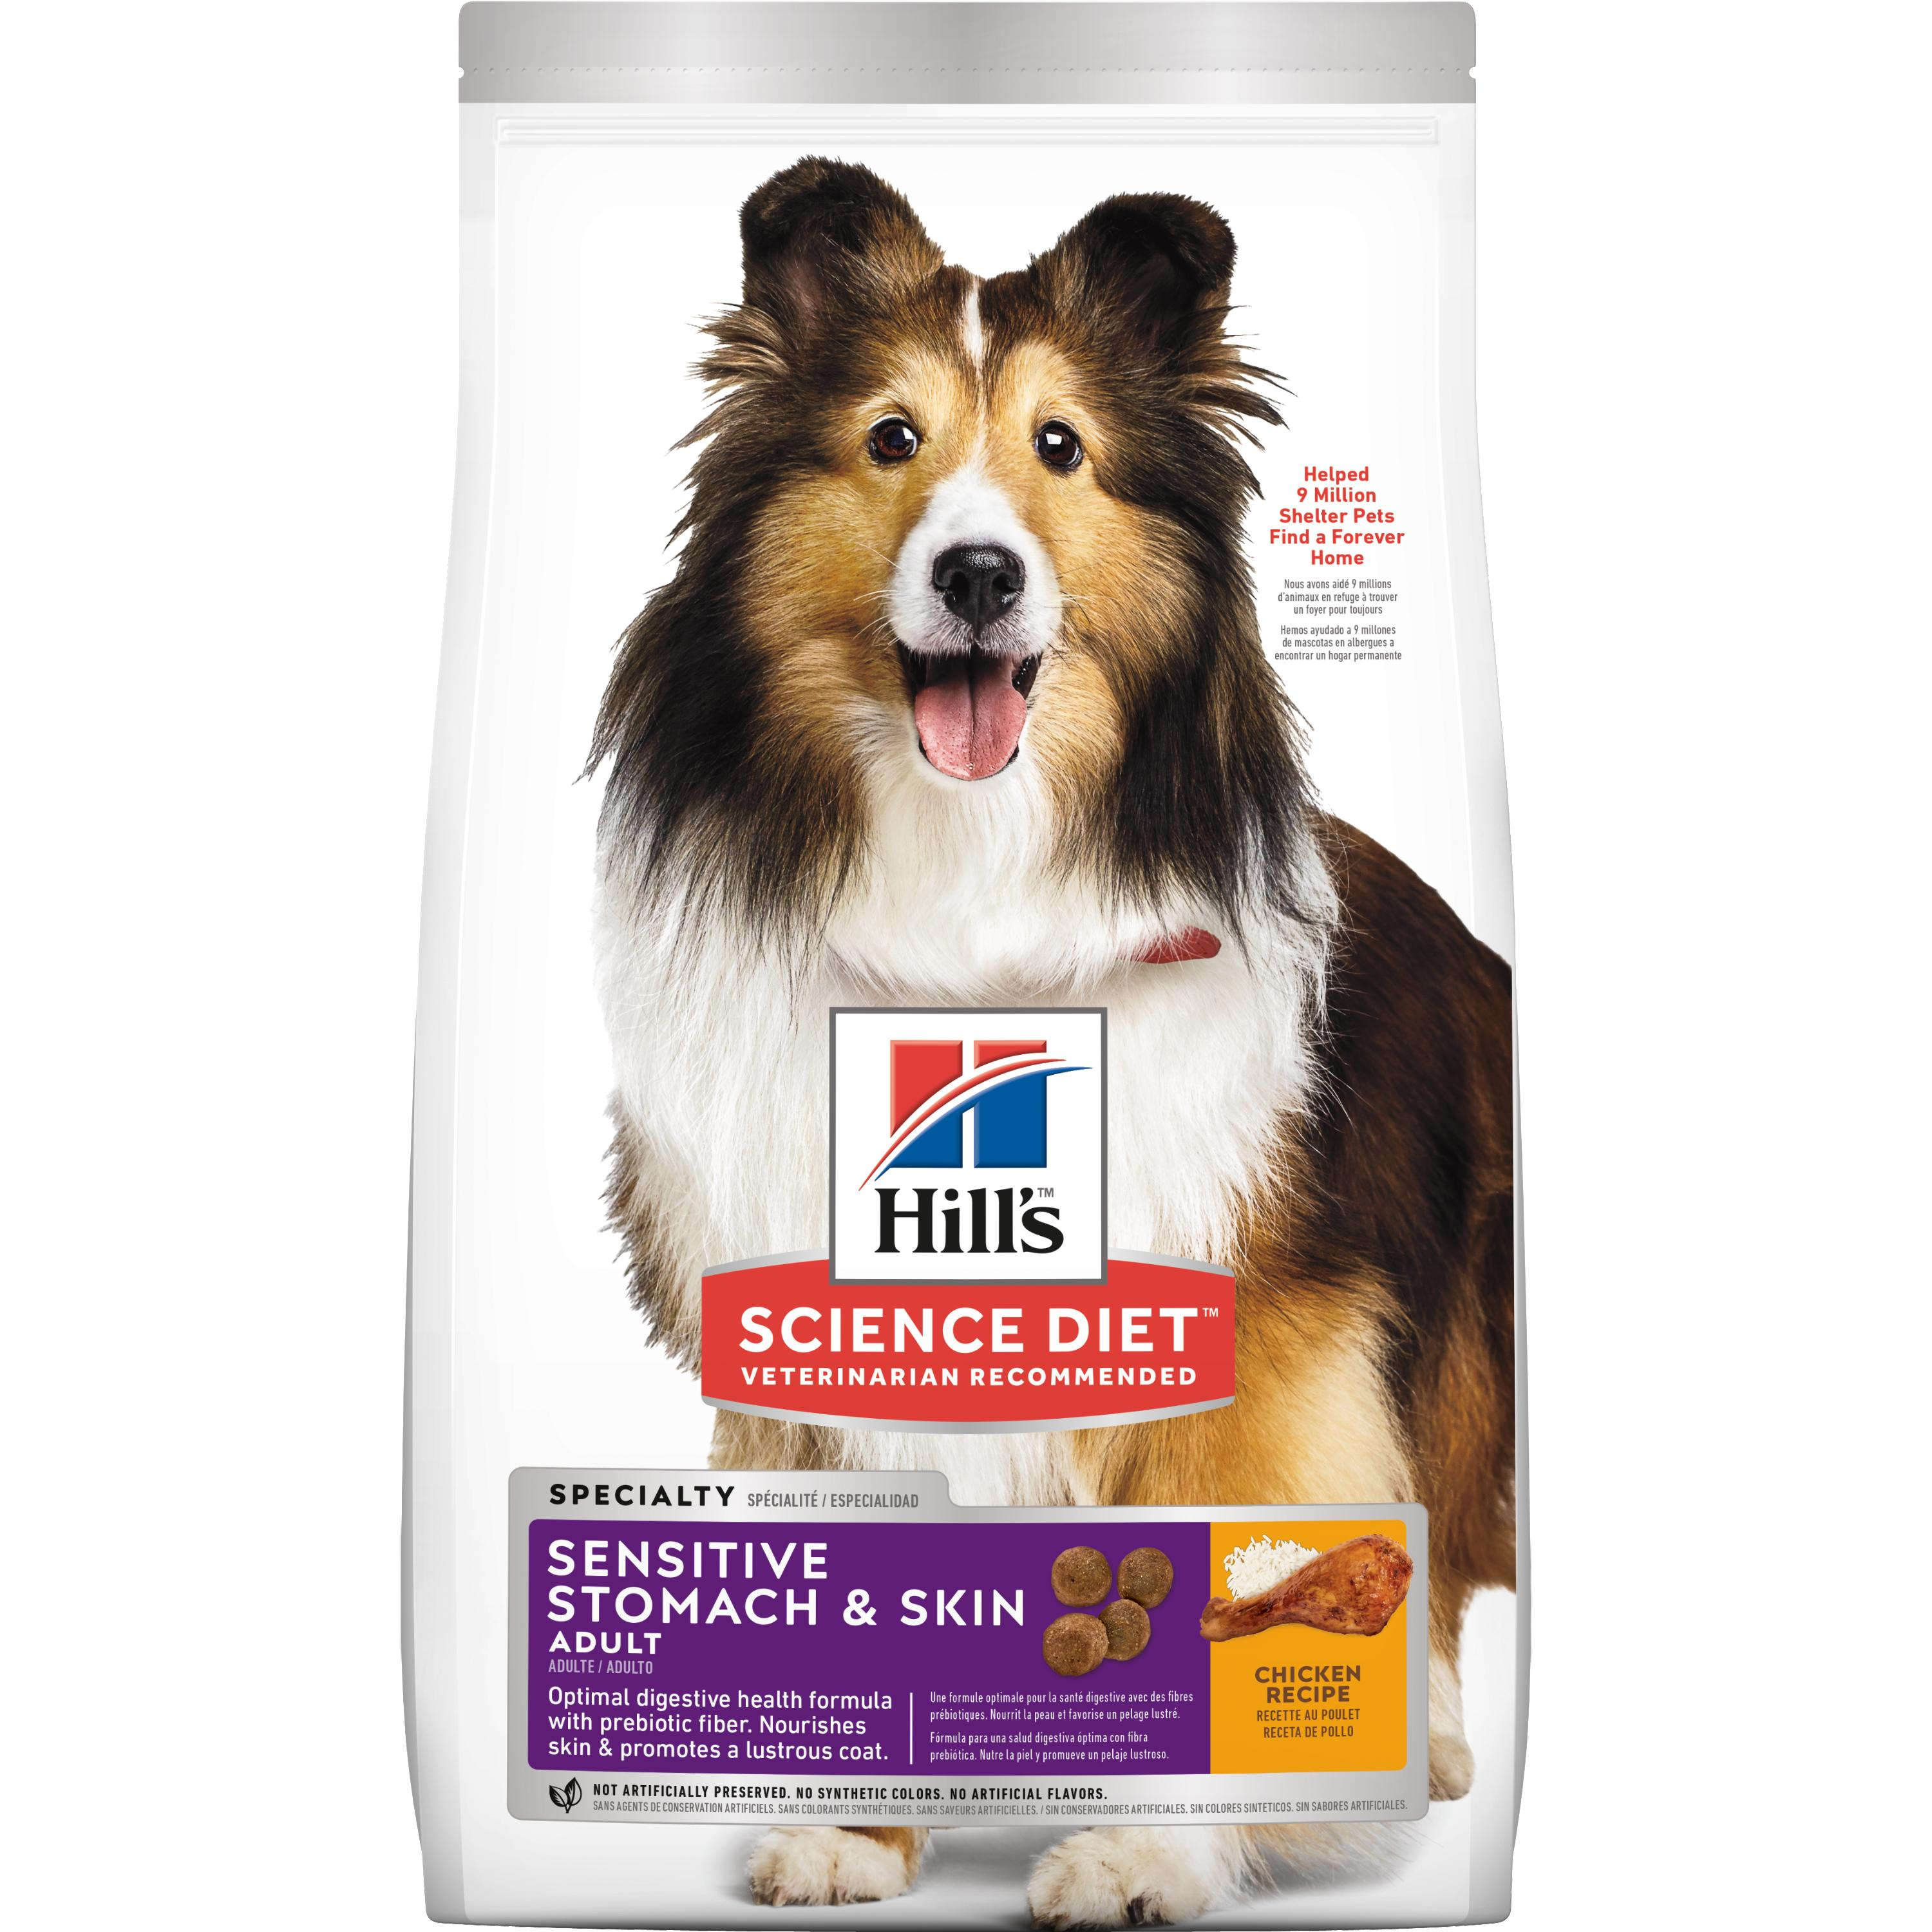 Hill's Science Diet Adult Sensitive Stomach & Skin Chicken Recipe Dry Dog Food, 30 lb bag by Hill's Pet Nutrition